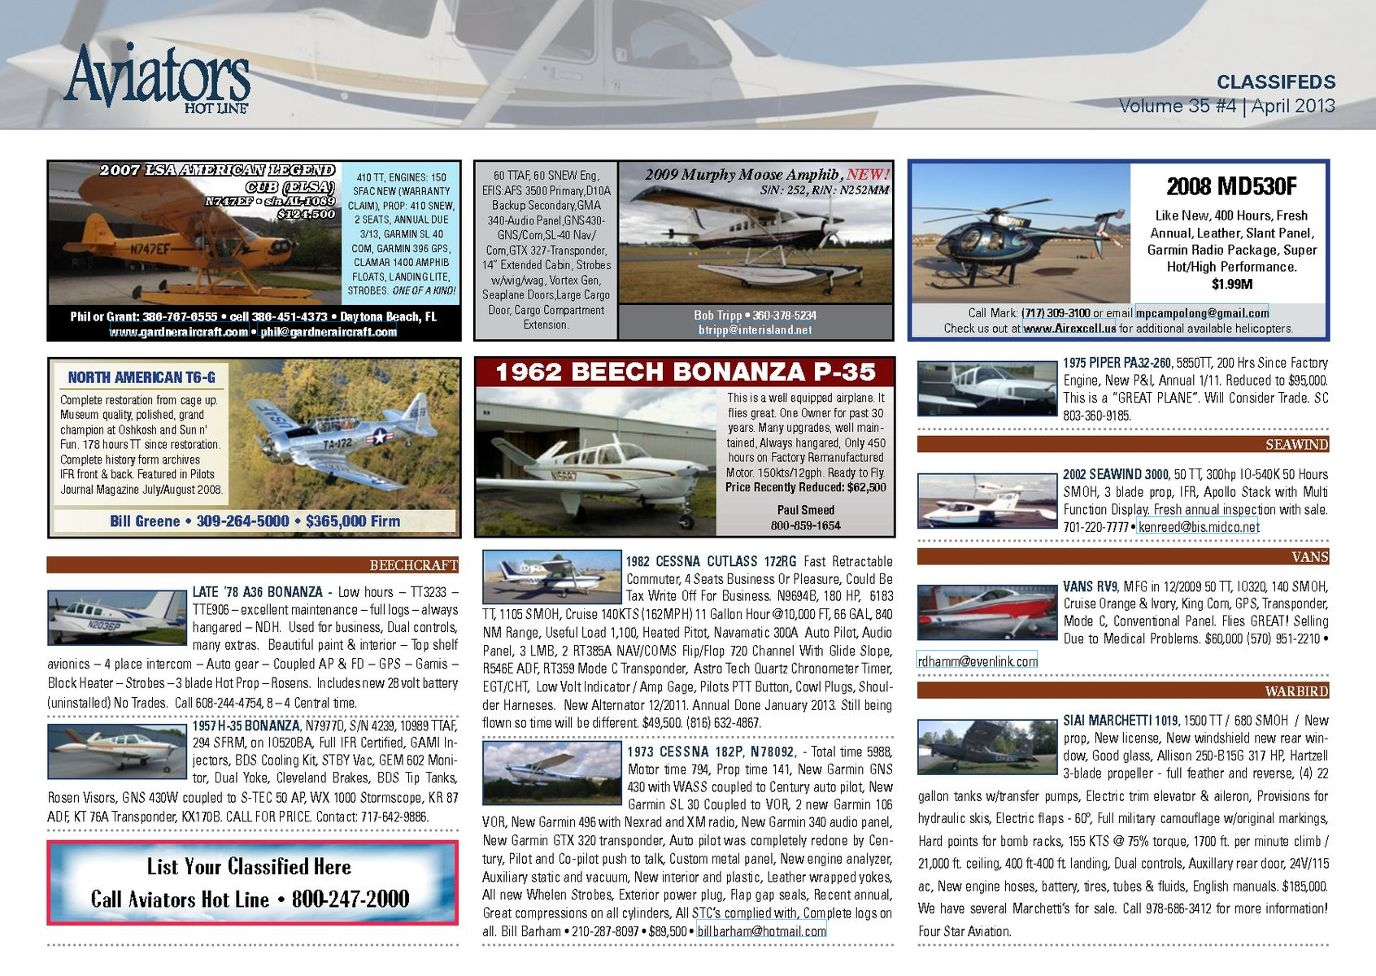 Aviators Hot Line Classifieds - April 2013